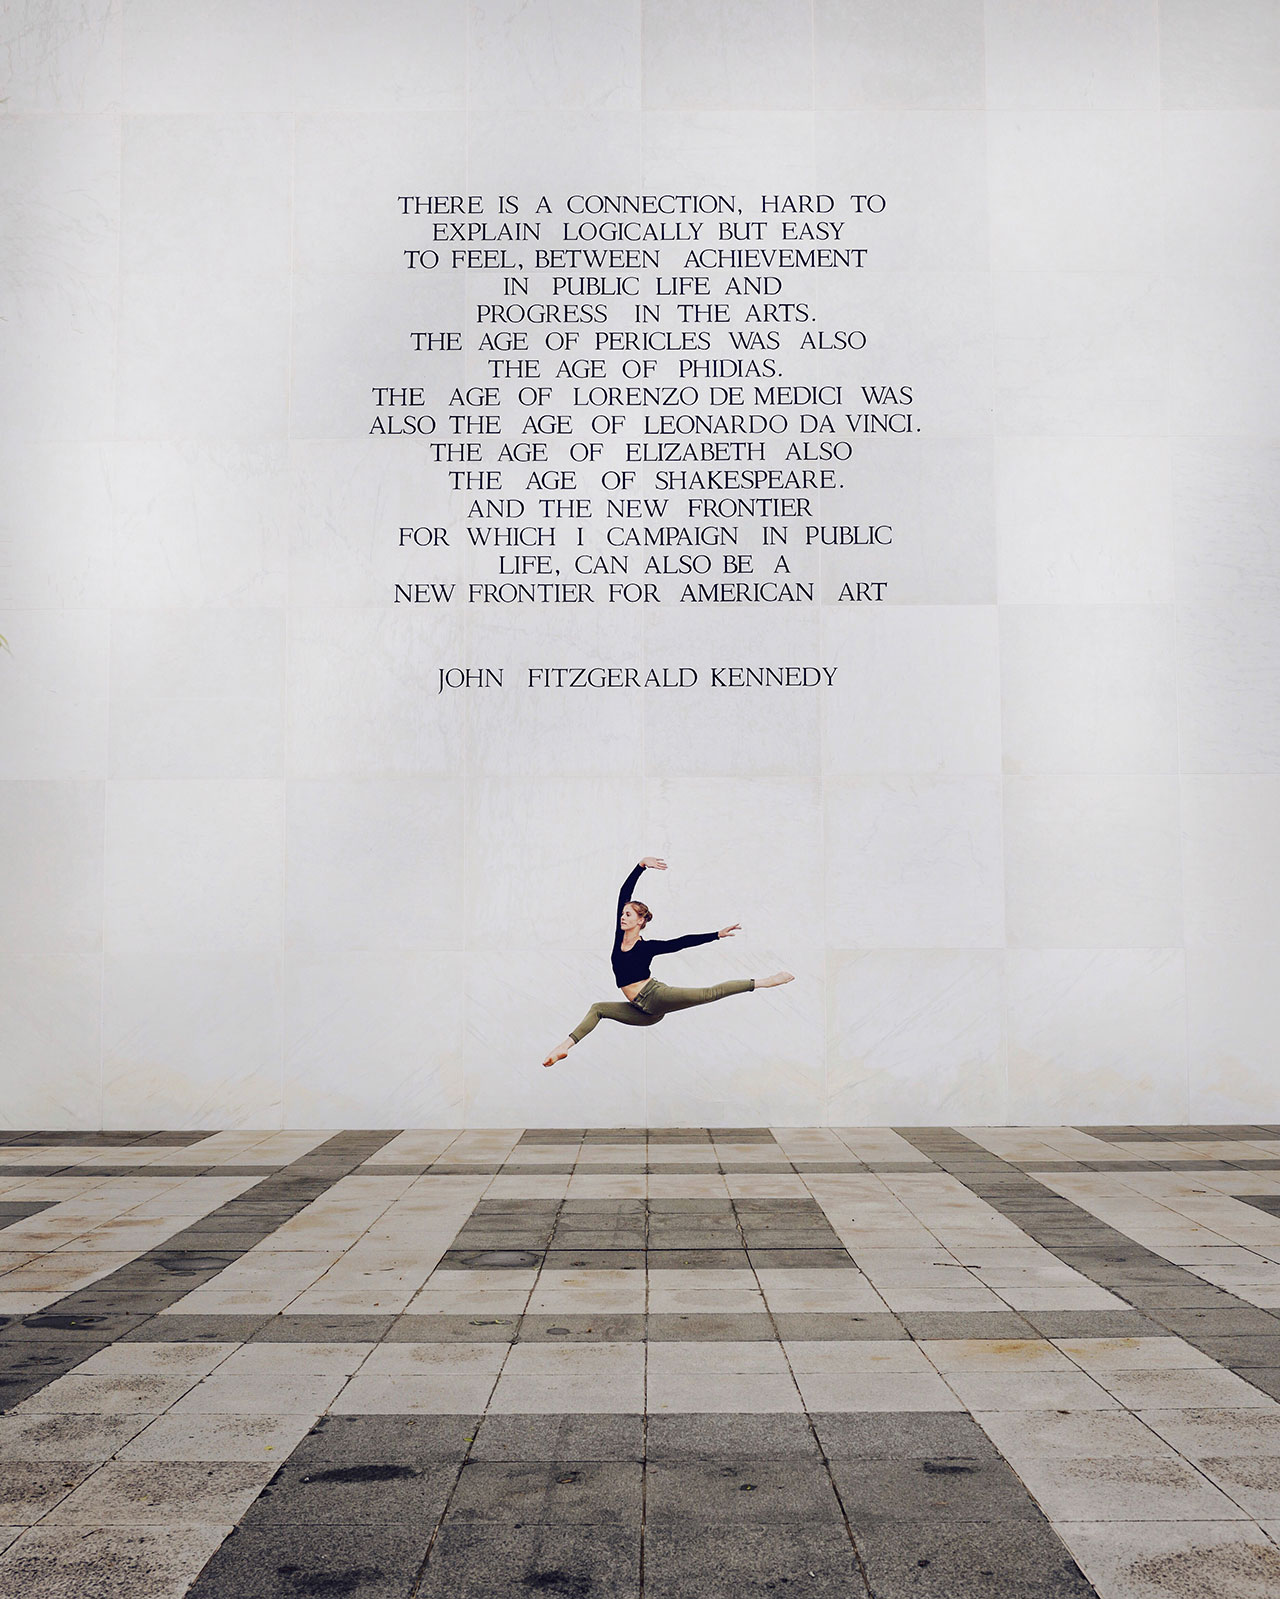 Location: The Kennedy Center | Dancer Jill Wilson | Photo © Tyson Wheatley from the series #CamerasandDancers.